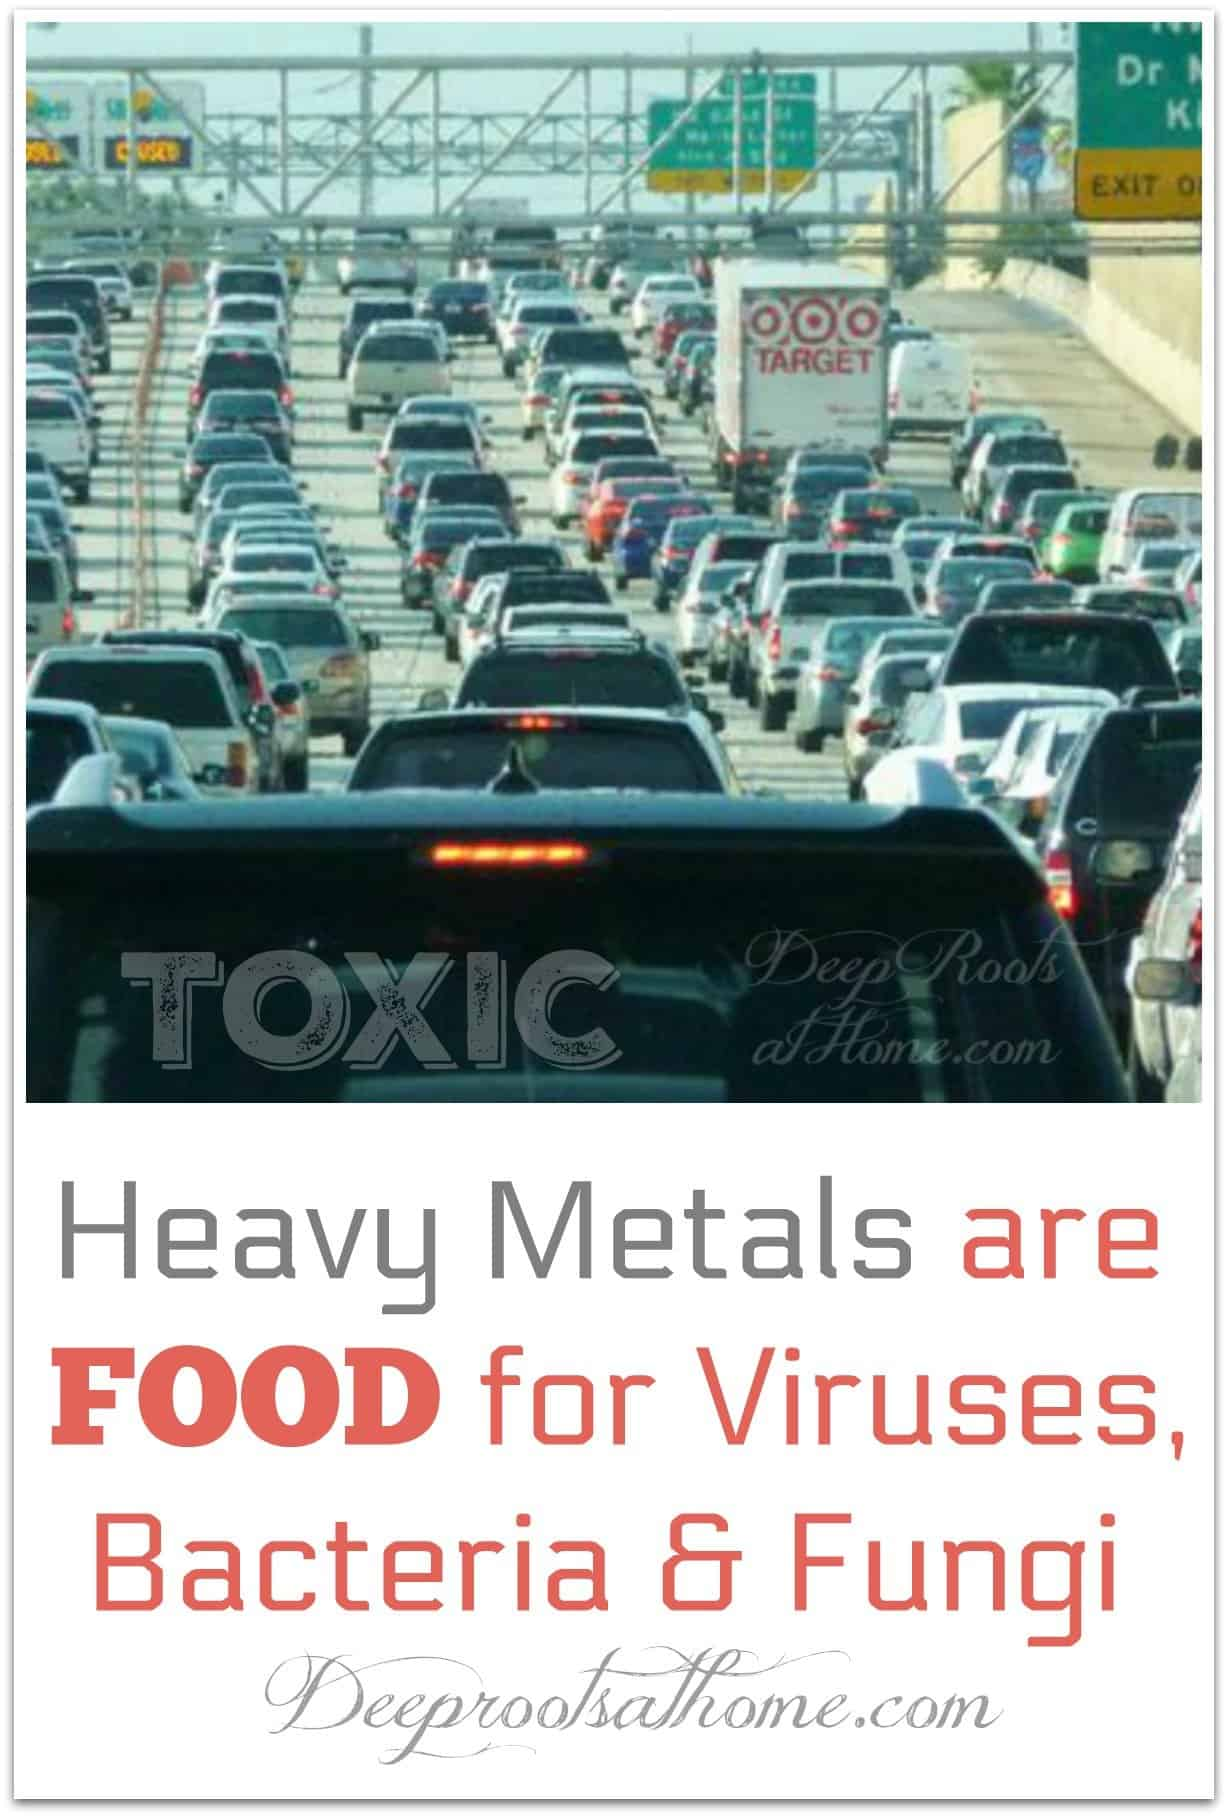 Heavy Metals are FOOD for Viruses, Bacteria, and Fungi. fumes from traffic jam